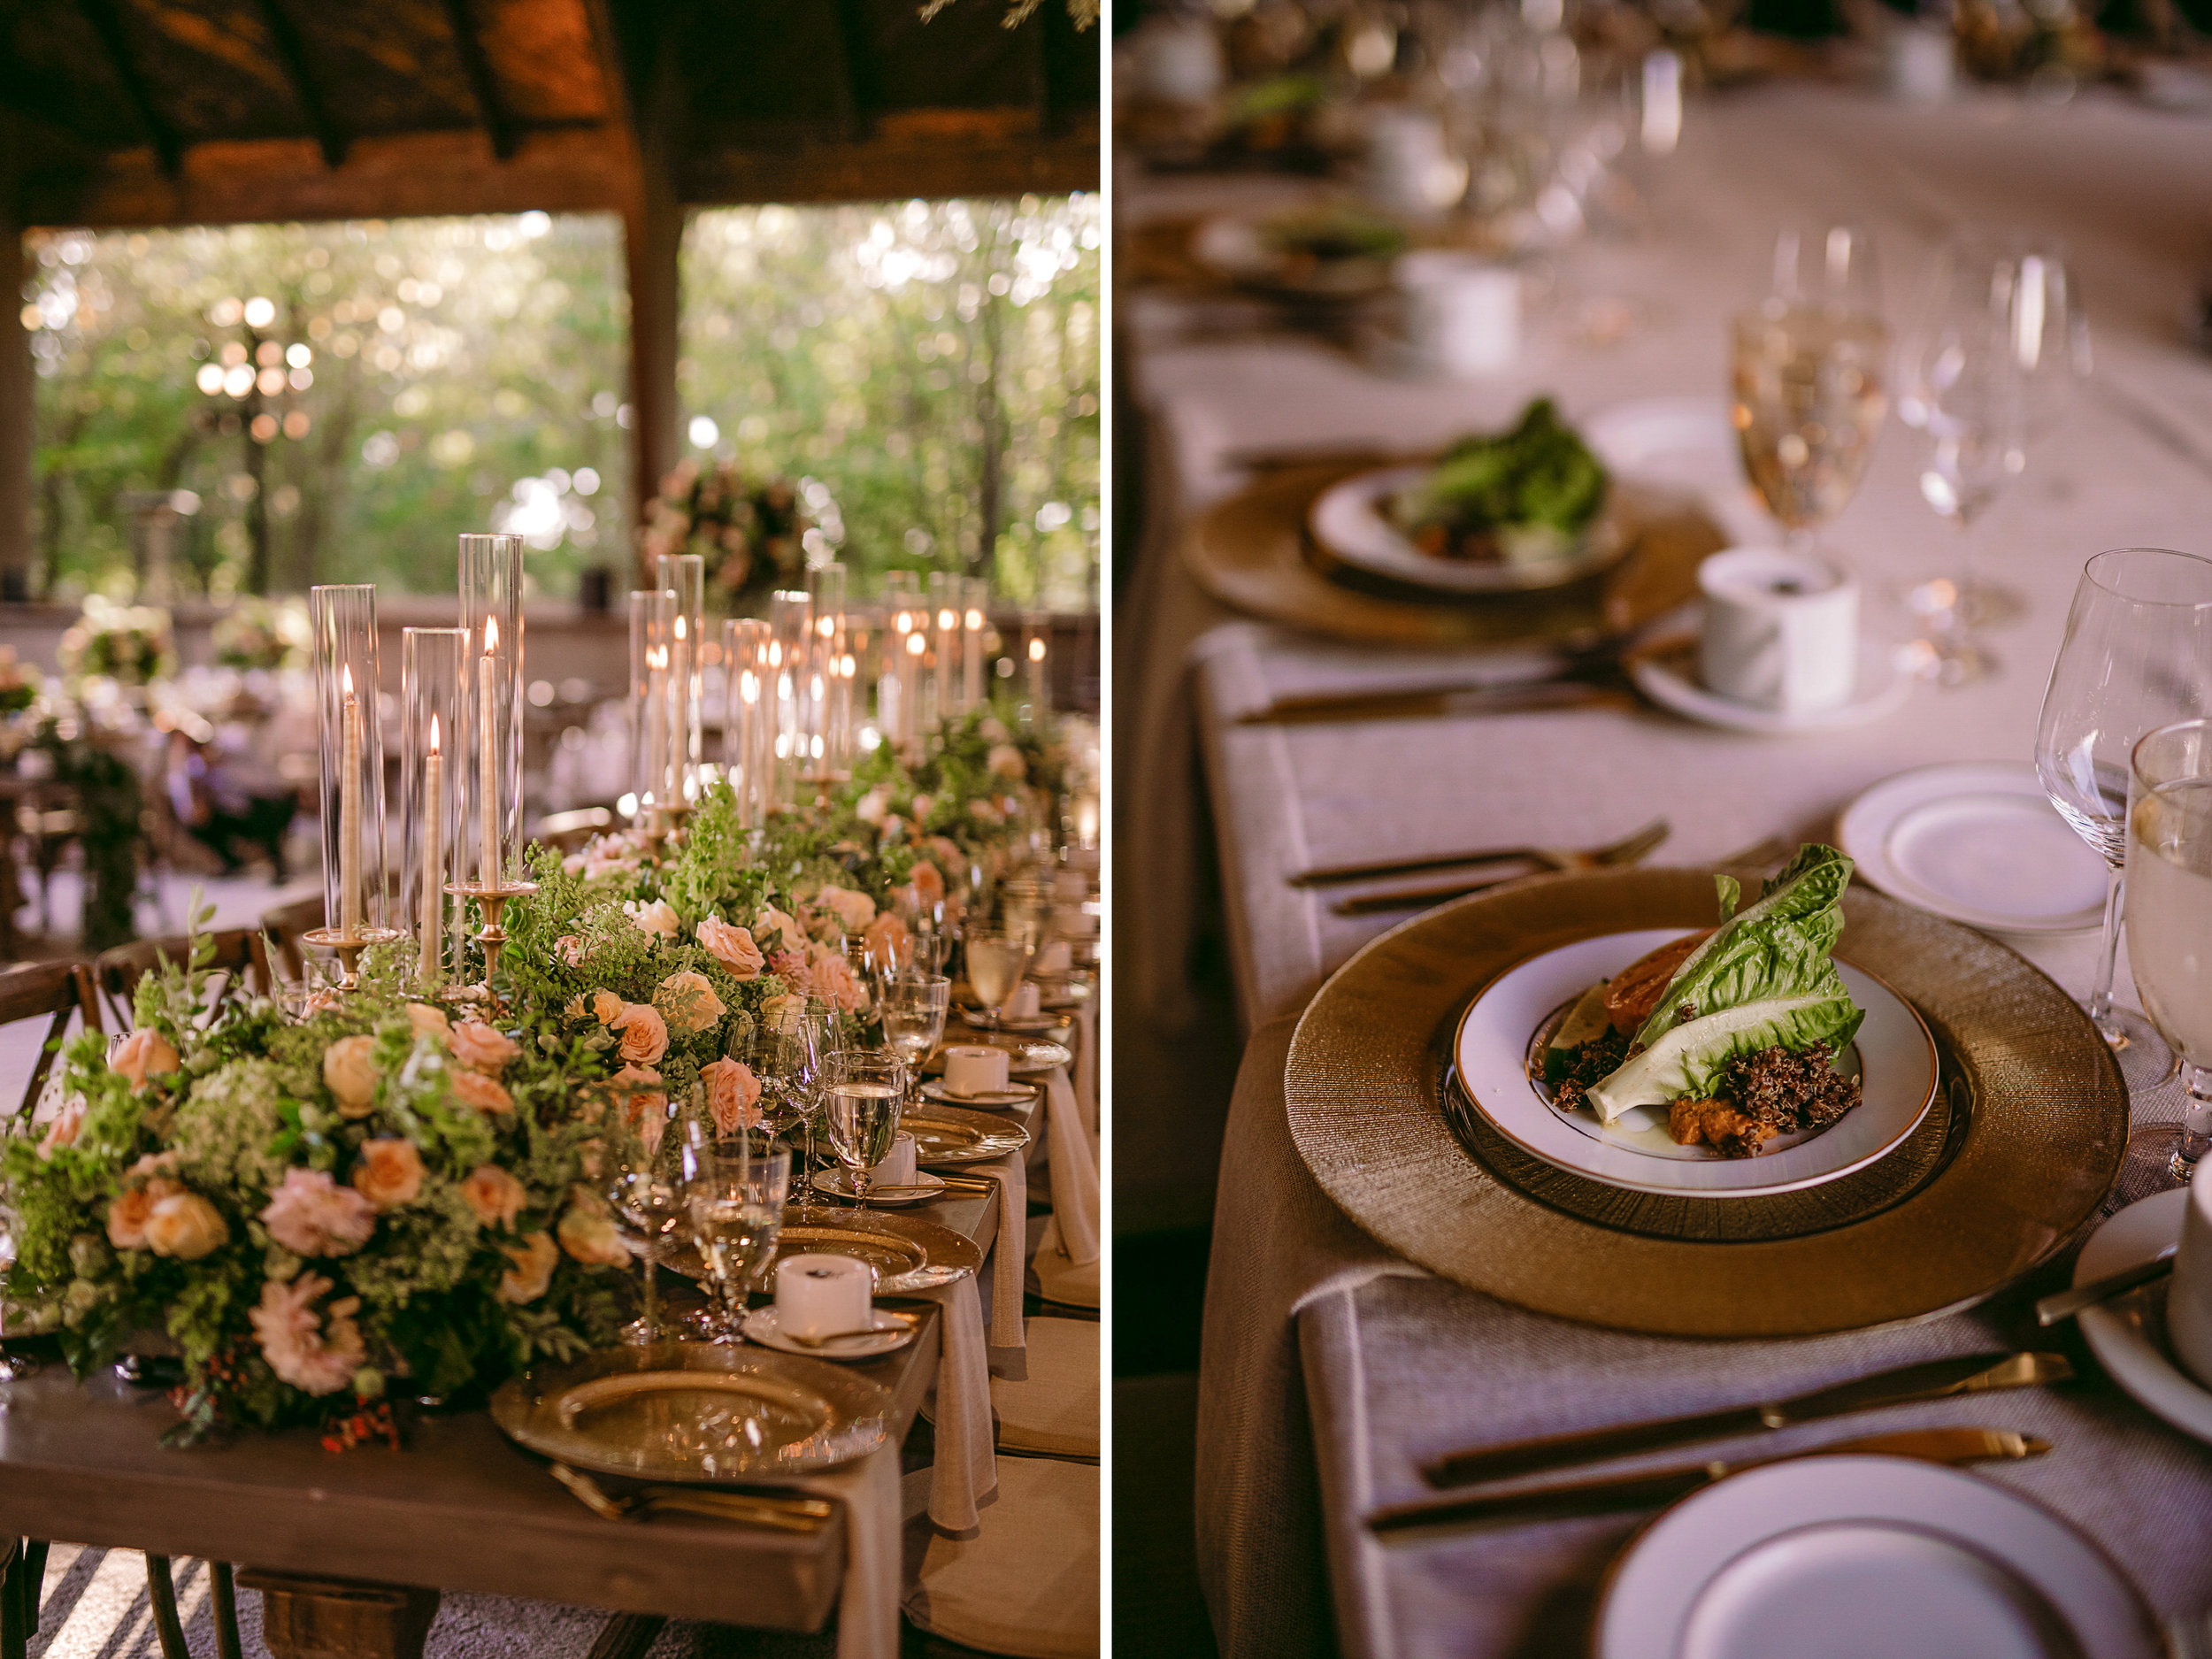 san diego wedding   photographer | collage of table arrangement with flowers and a serving of   food